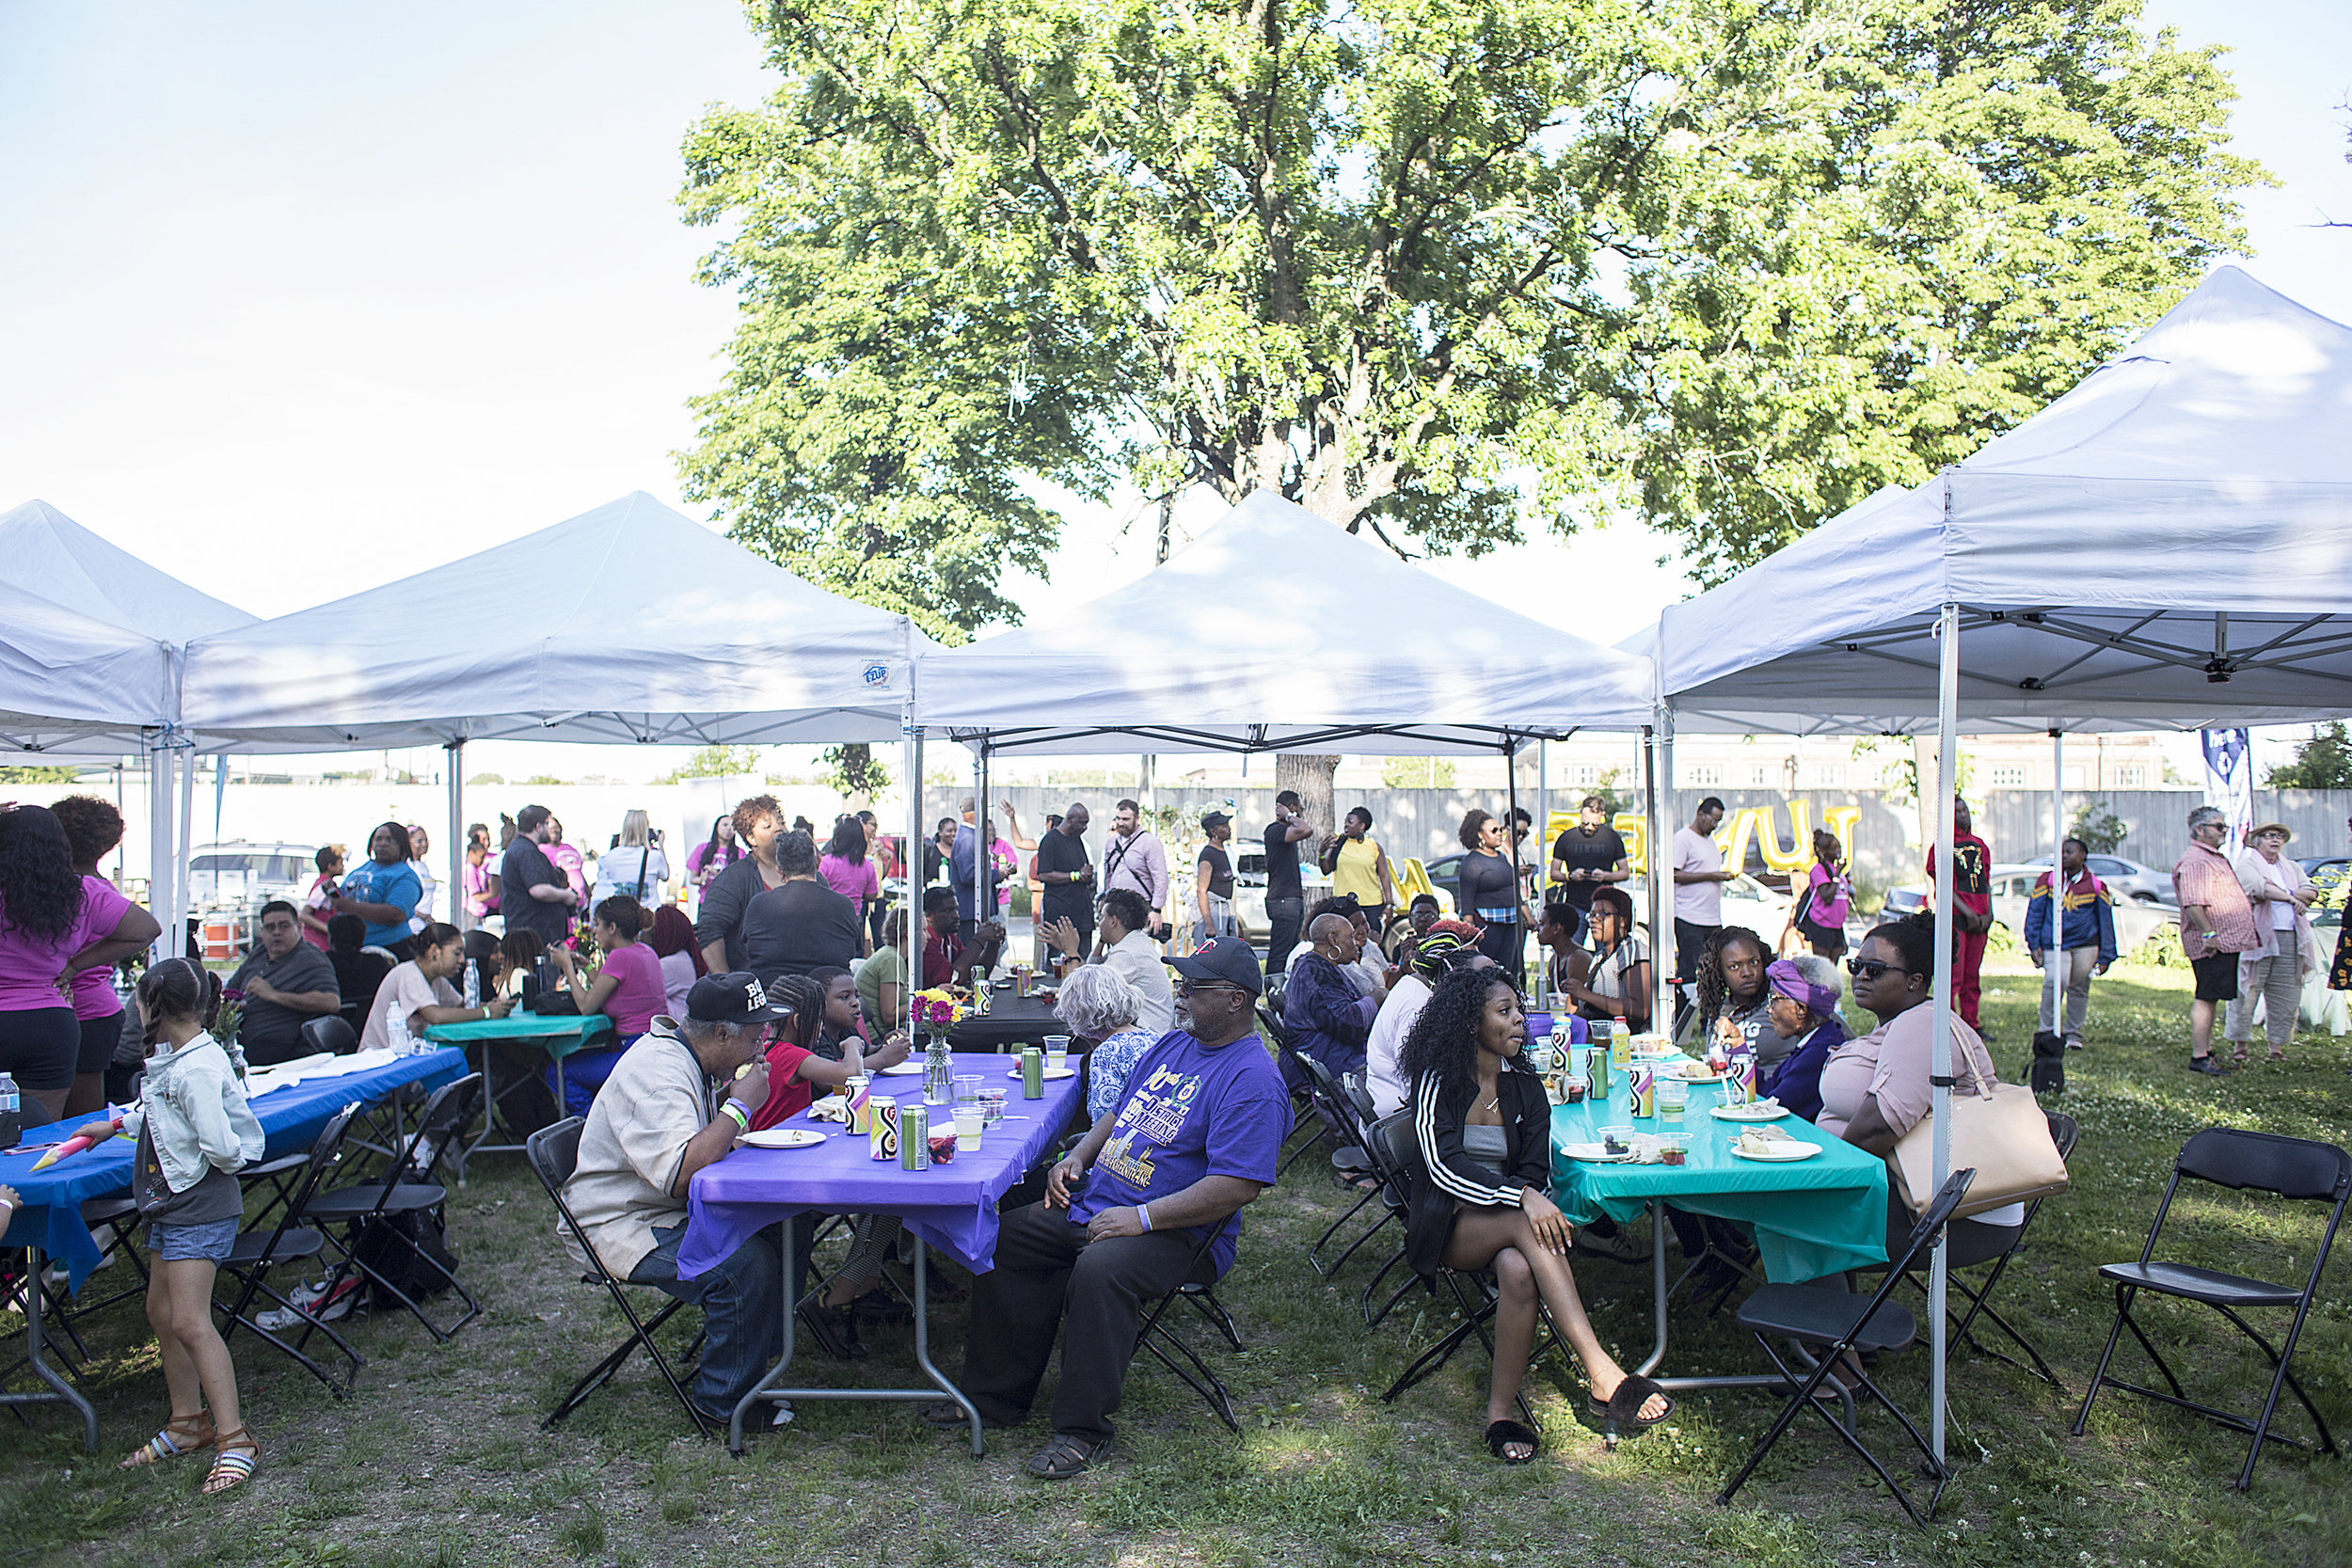 The crowd enjoyed perfect weather and grilled sausage and corn to go with the fellowship of family and friends at VFC's Juneteenth event in June.